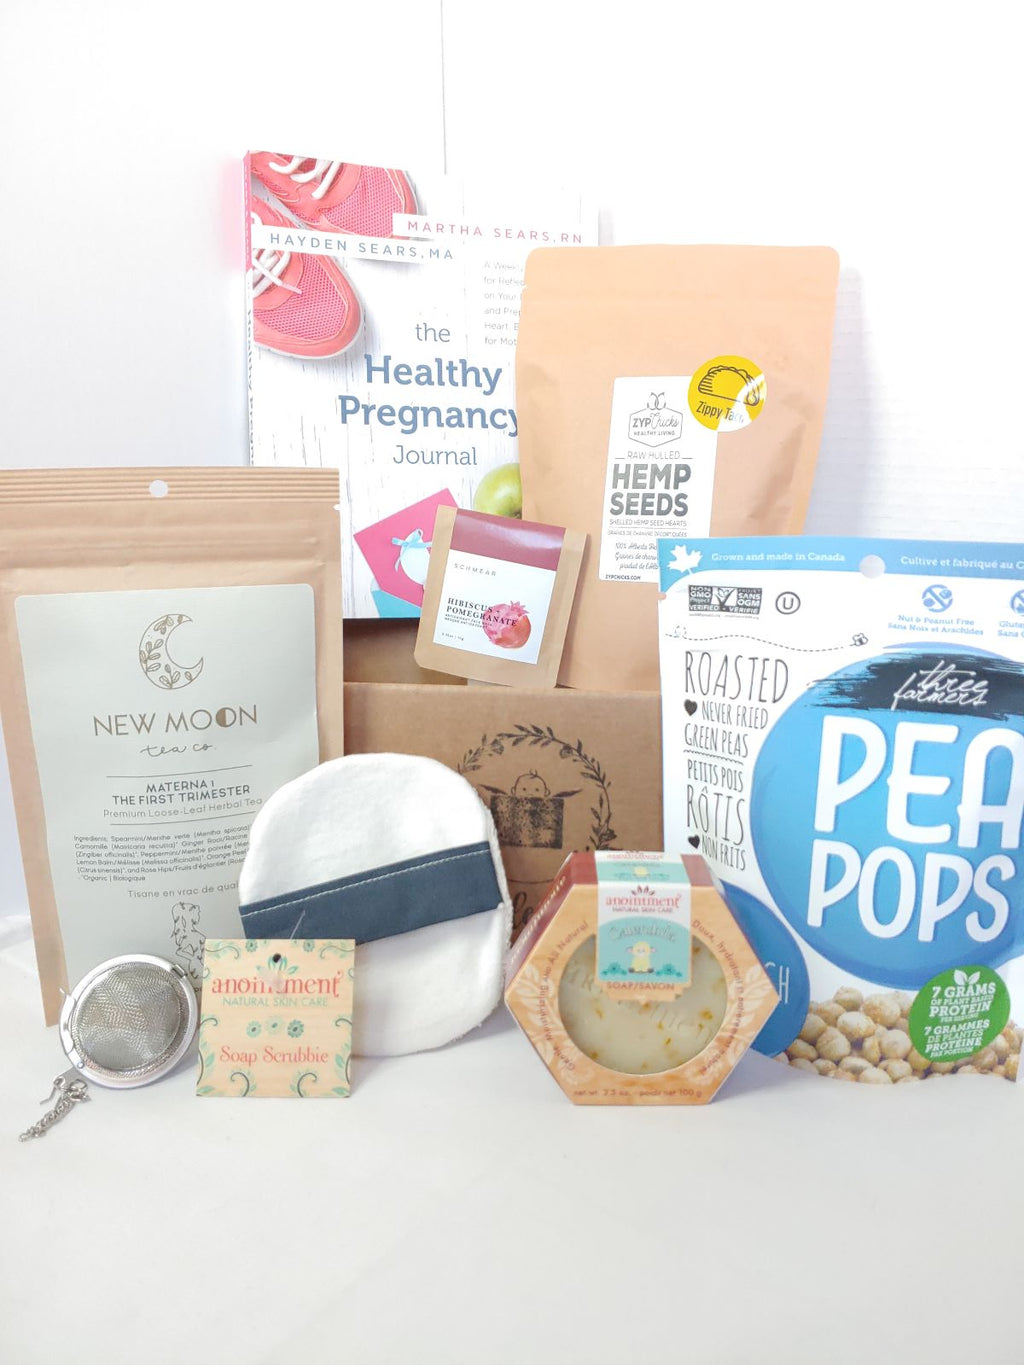 1st trimester box, pregnancy gift basket with Bundle of Joy Box, includes healthy snacks, self care products, pregnancy tea, etc